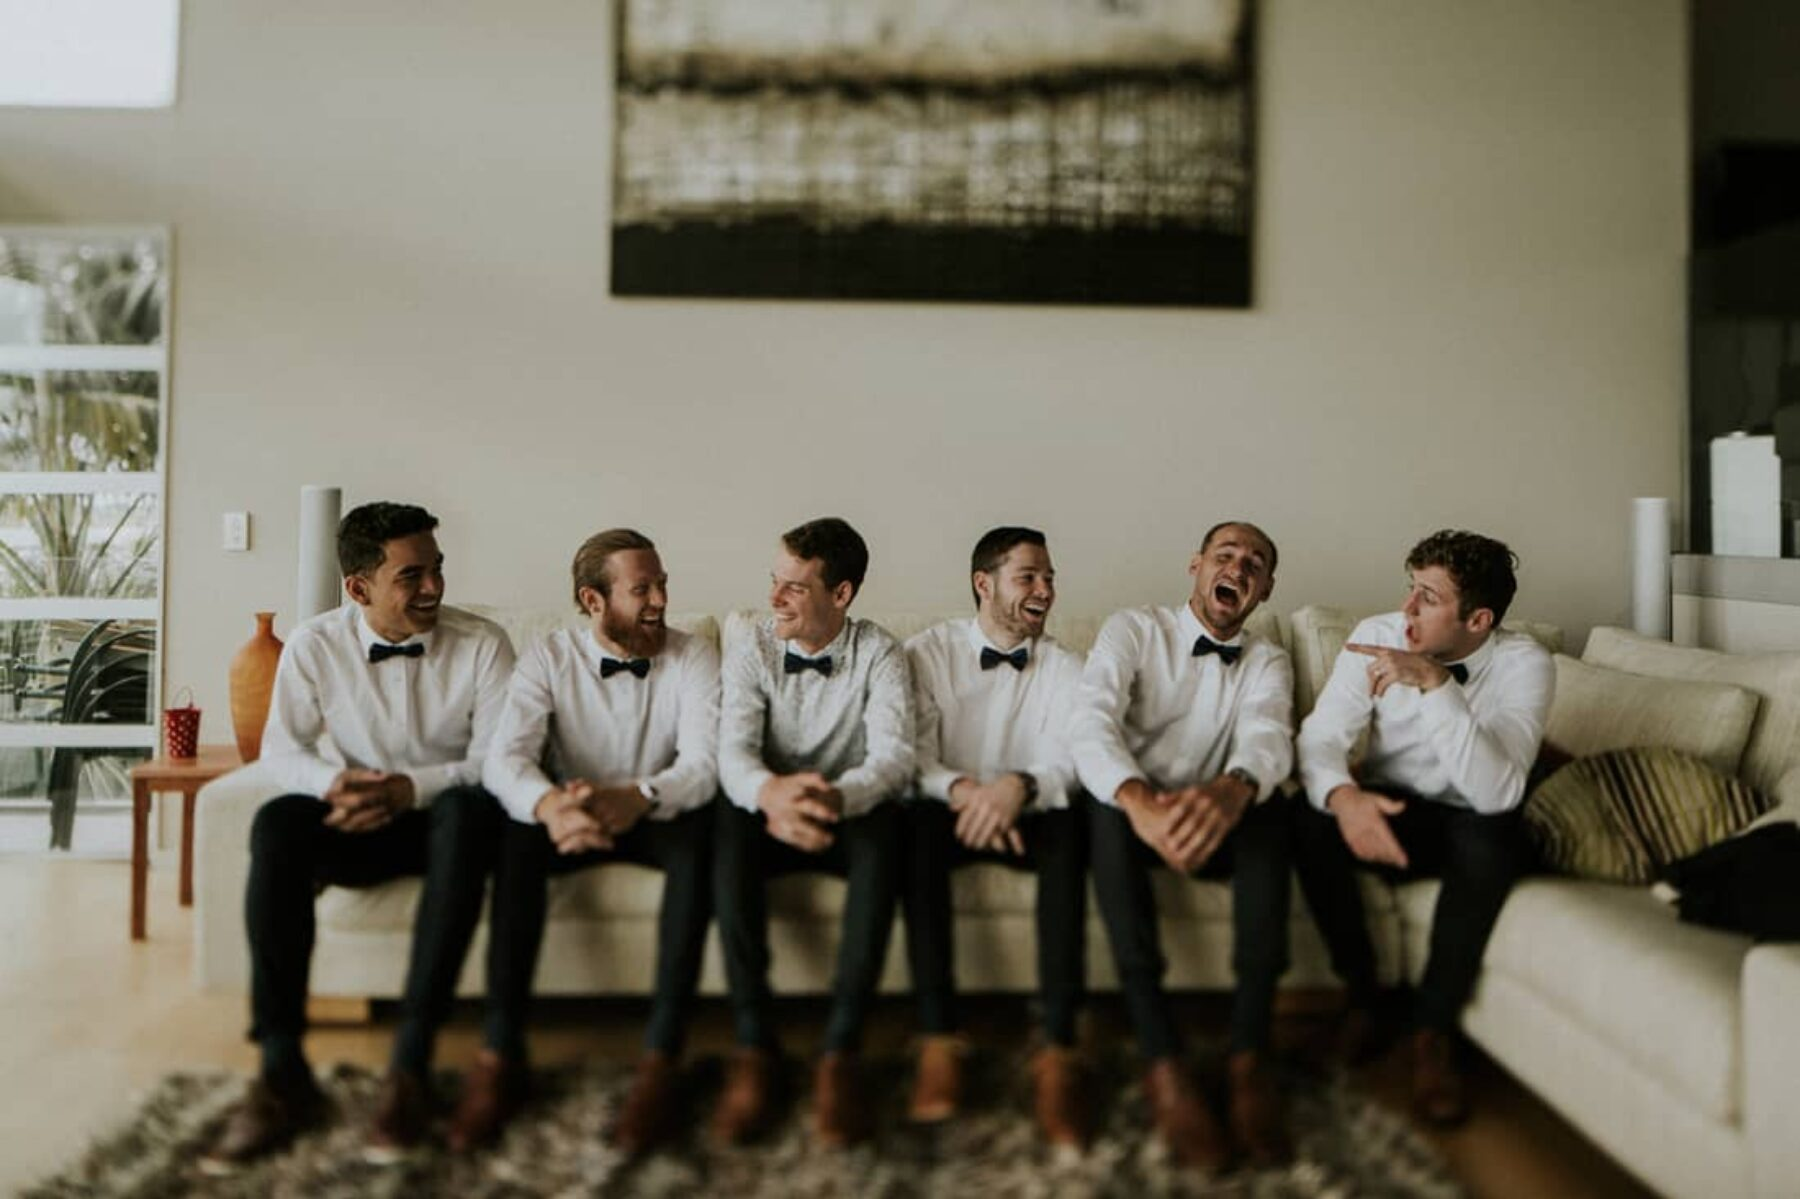 groom and groomsmen getting wedding-ready